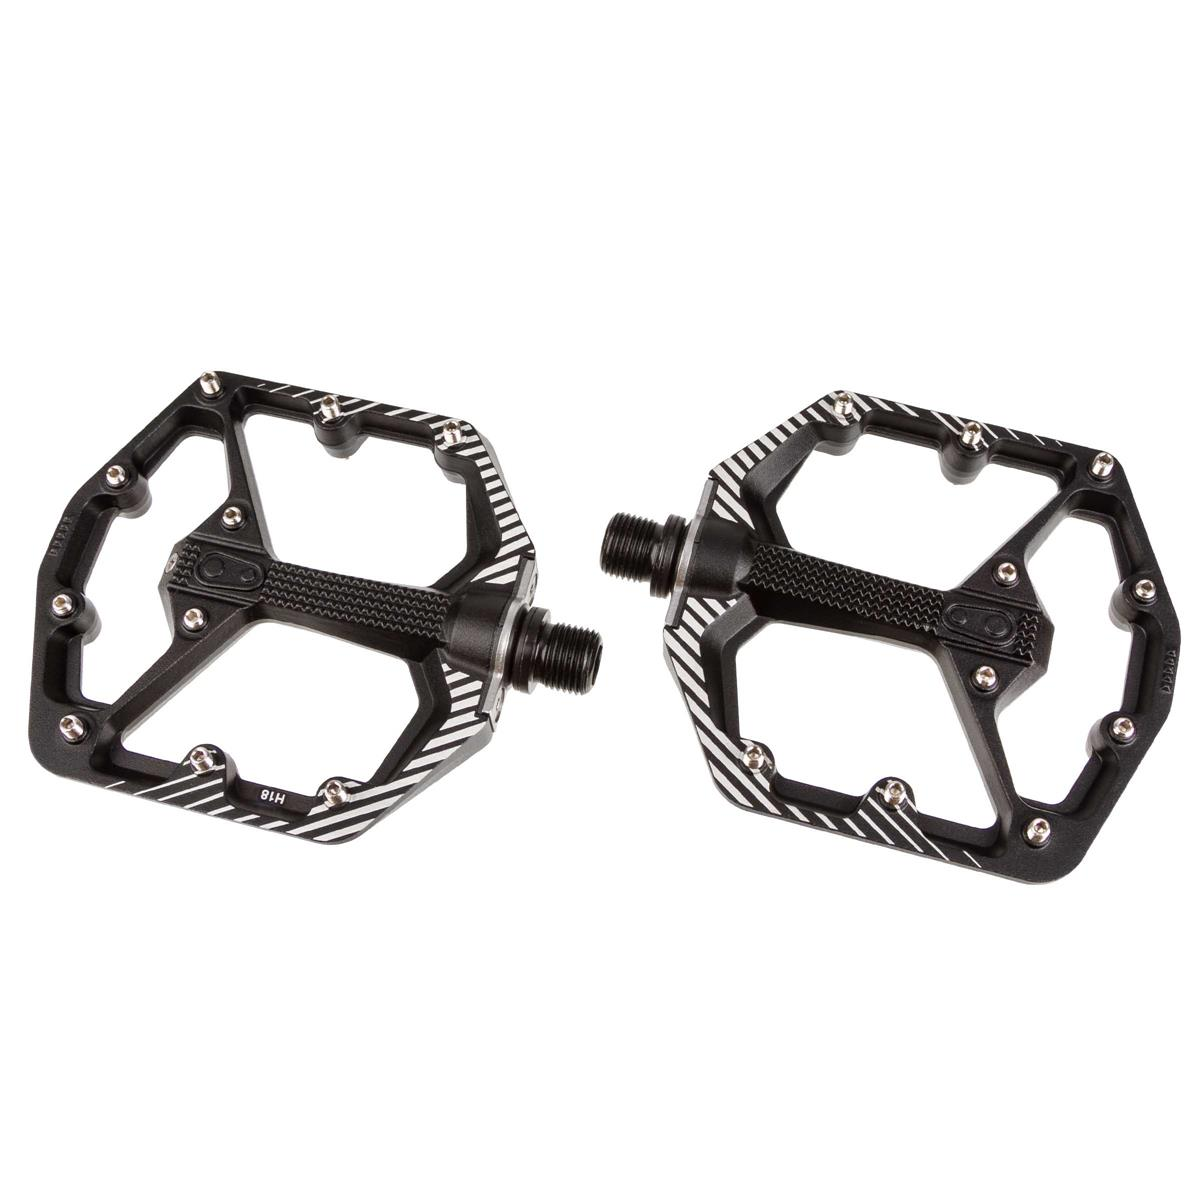 Crankbrothers Pedale Stamp 7 Danny MacAskill Edition, Raw/Schwarz, Small